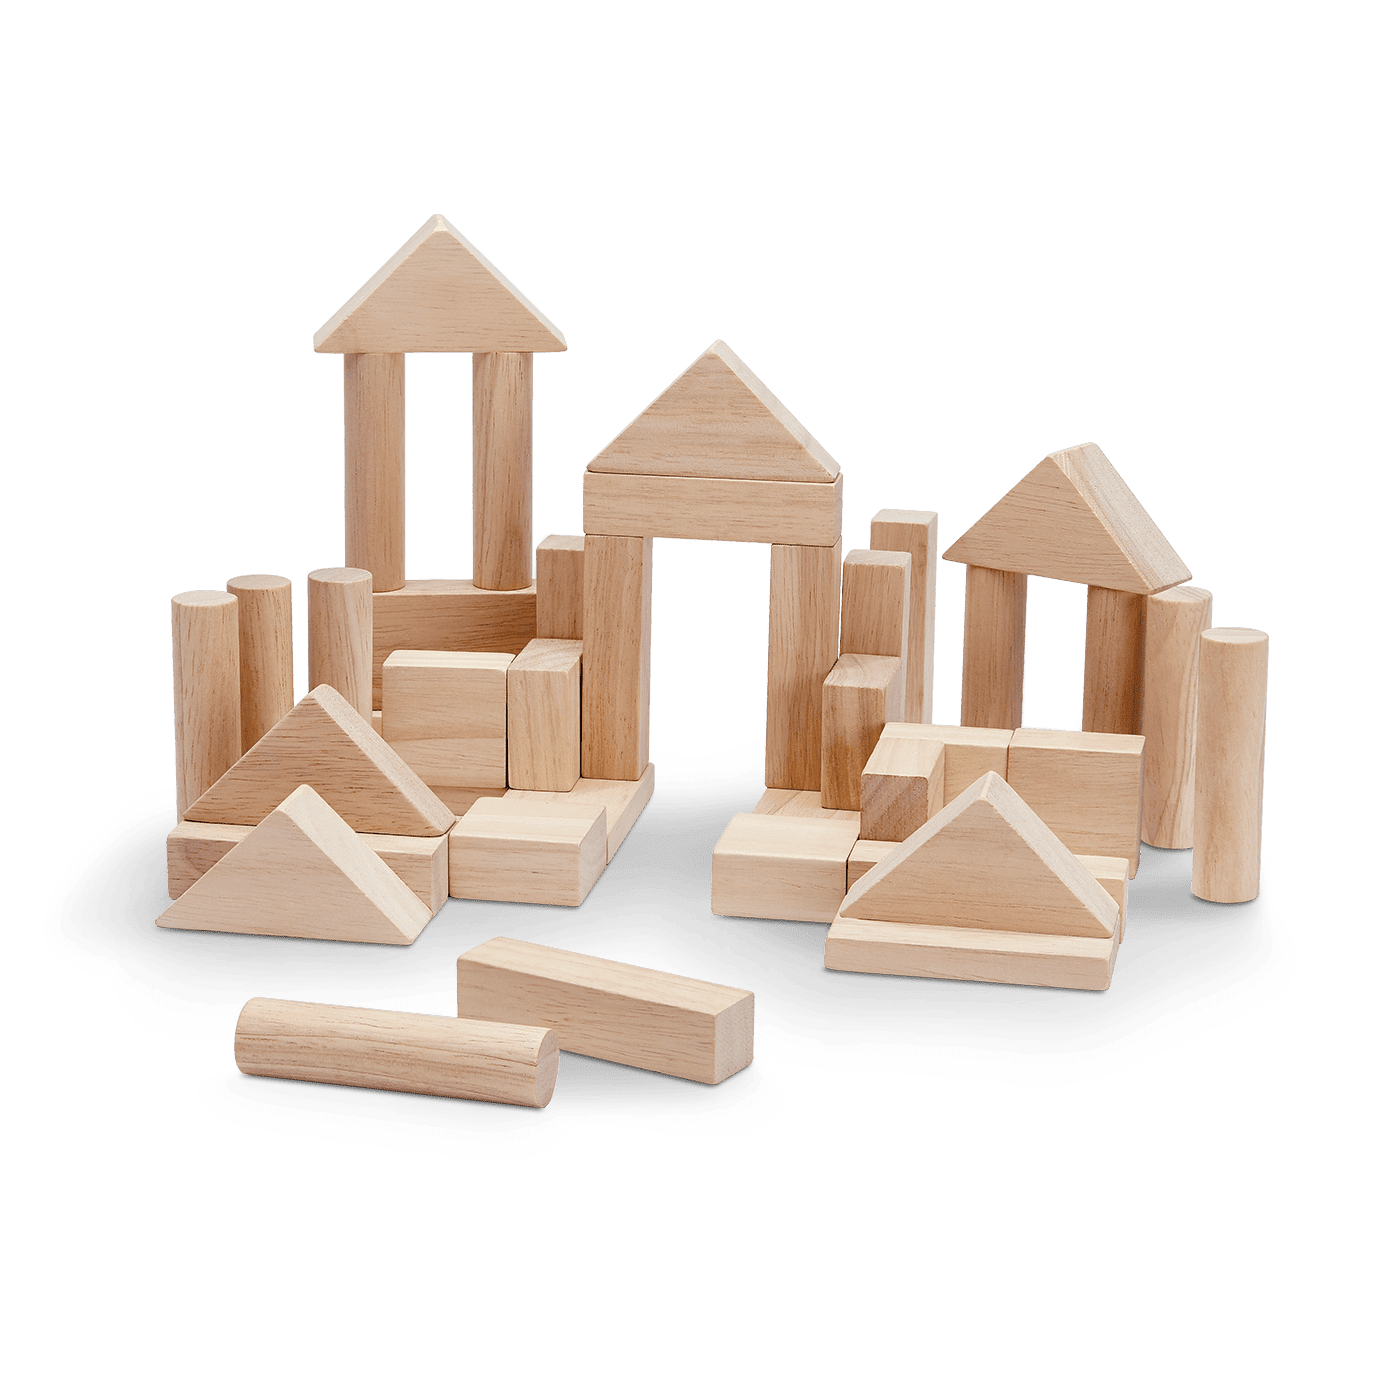 5512_PlanToys_40_UNIT_BLOCKS_-_NATURAL_Blocks_and_Construction_Creative_Imagination_Coordination_Language_and_Communications_Social_2yrs_Wooden_toys_Education_toys_Safety_Toys_Non-toxic_0.png